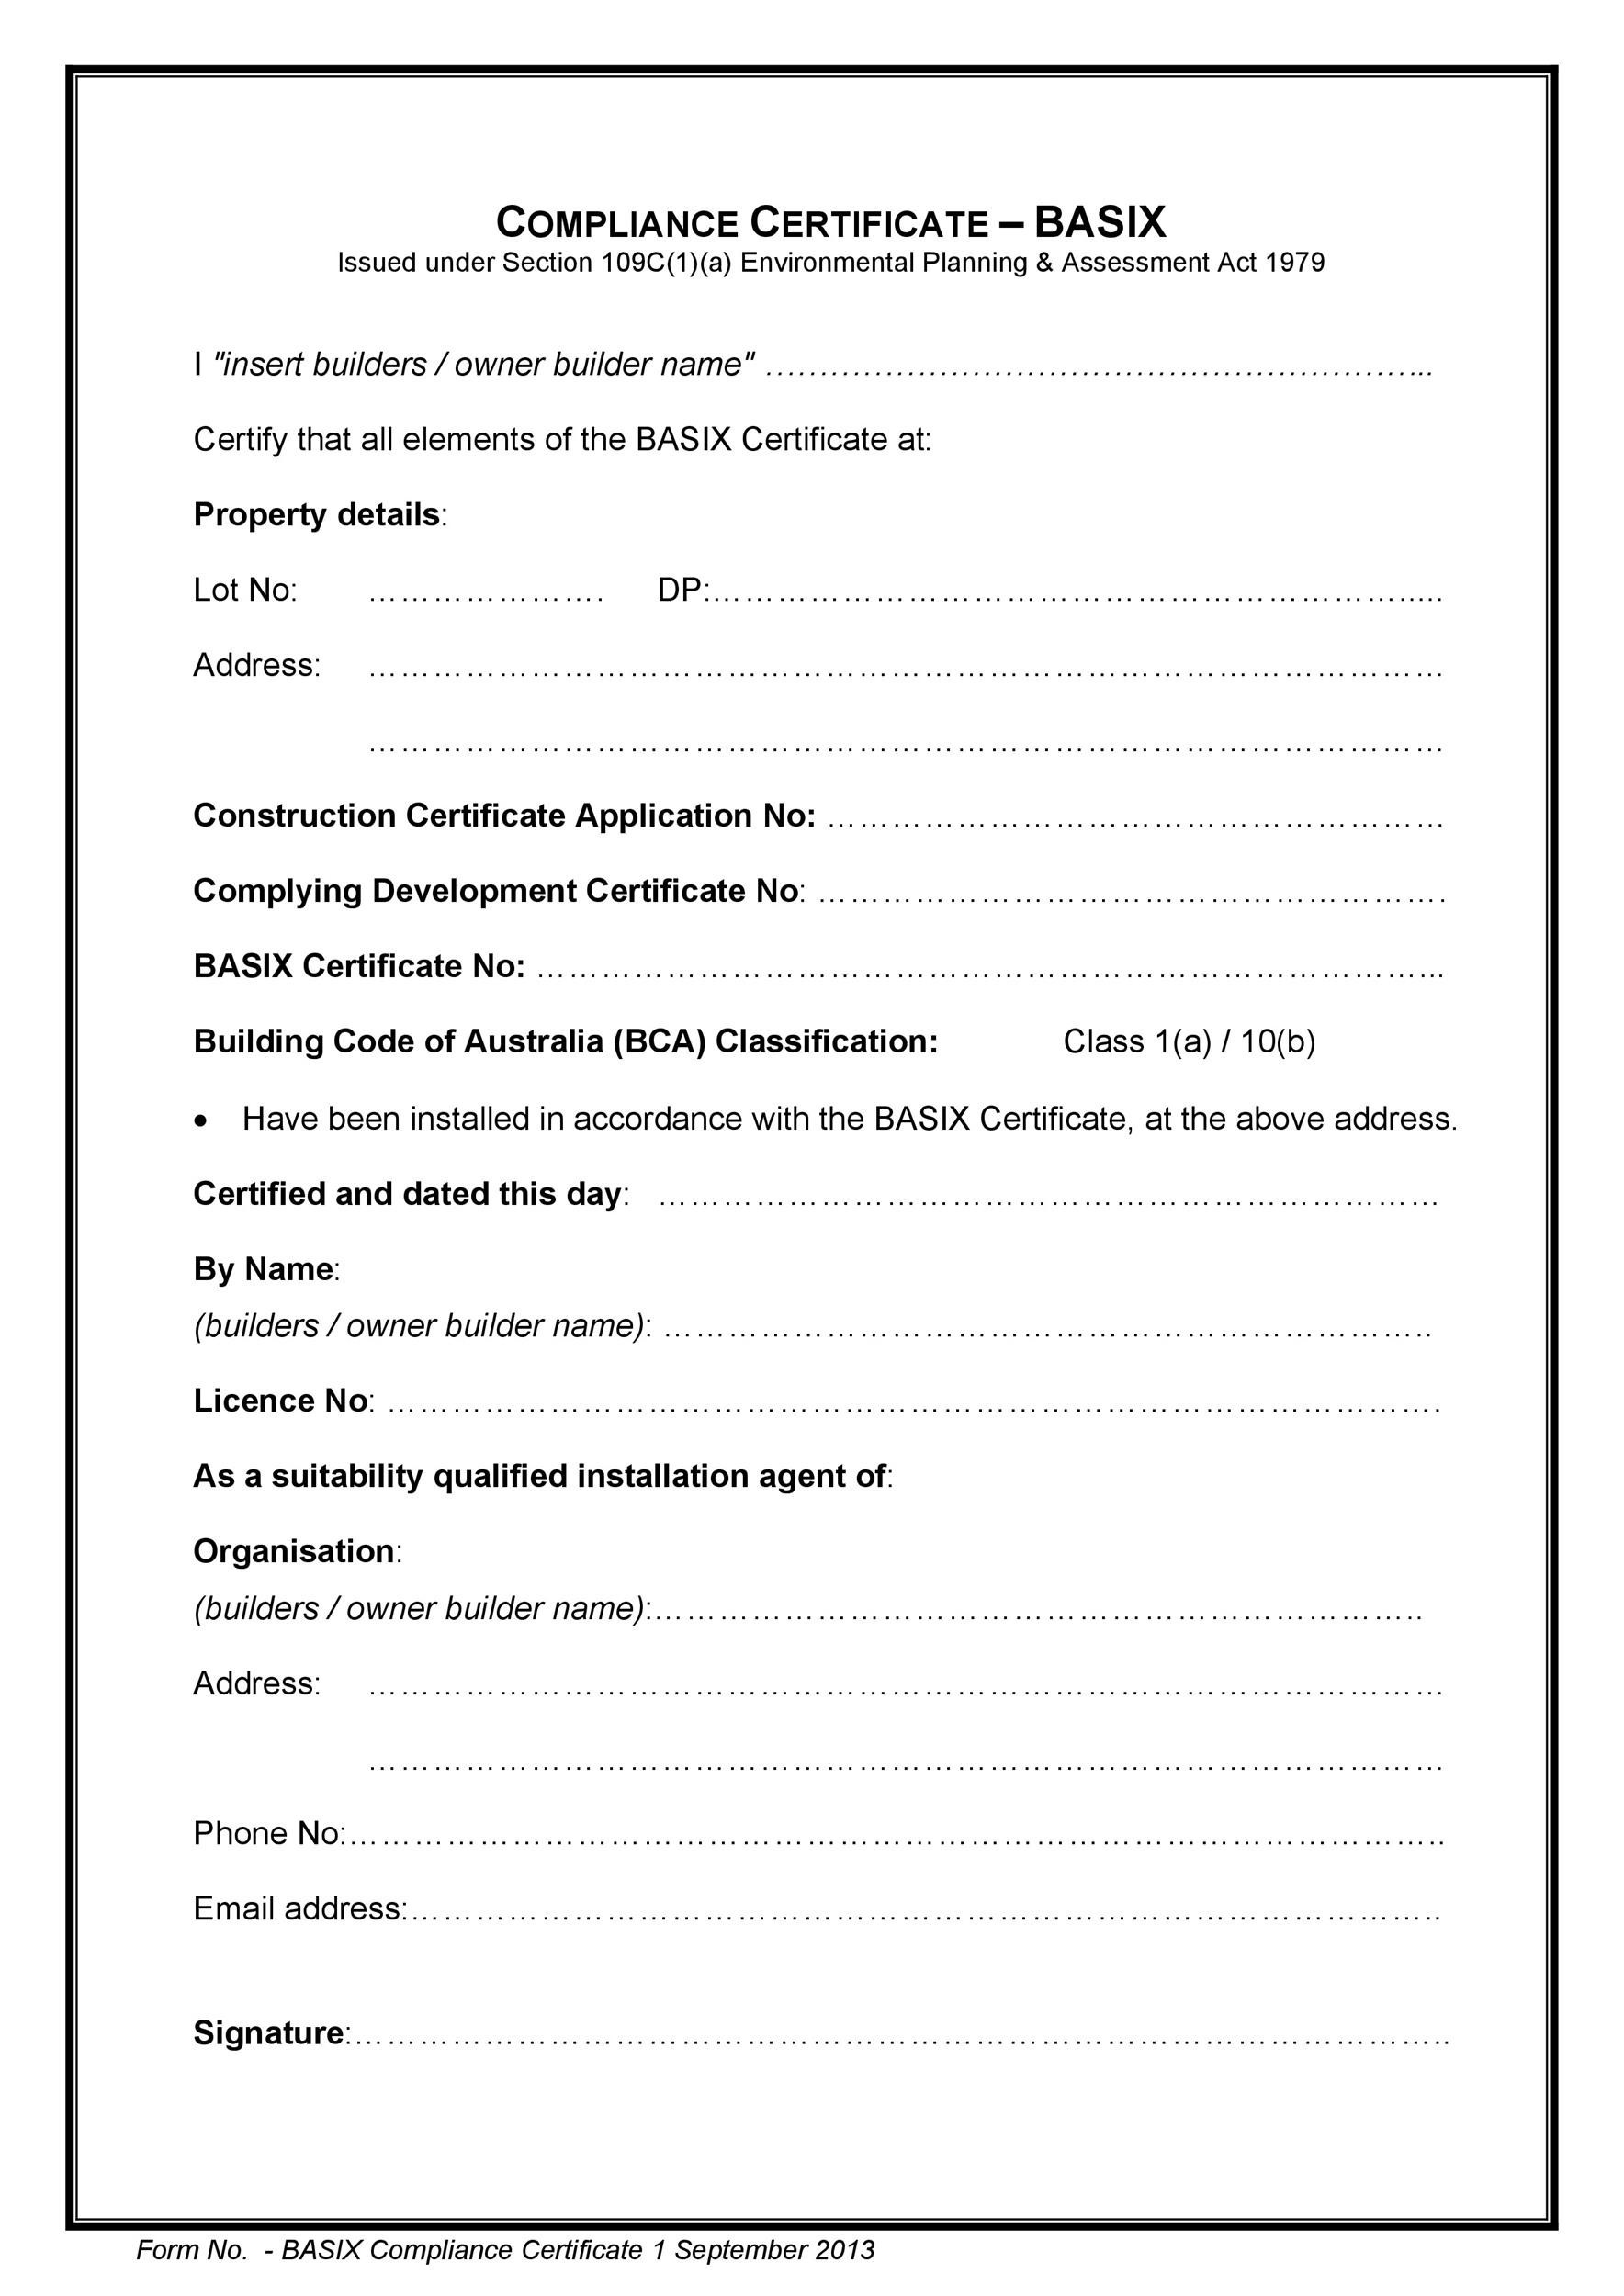 40 free certificate of conformance templates forms template lab printable certificate of conformance 14 xflitez Choice Image